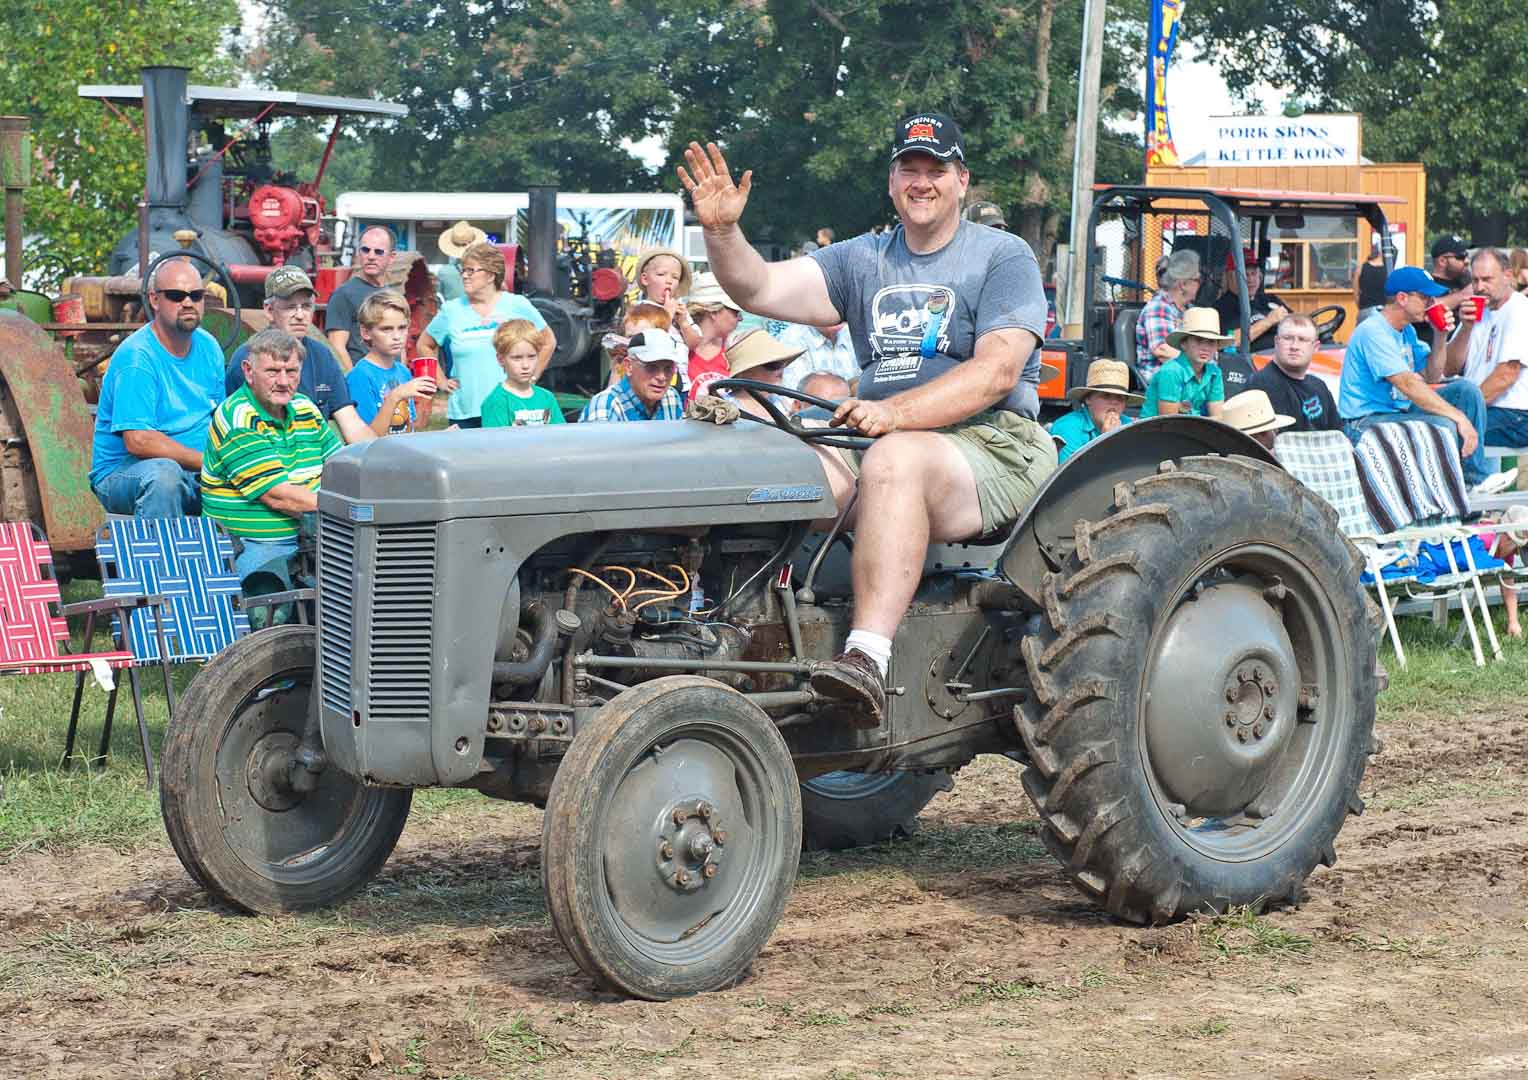 Jeff Miller of Cincinnati, OH on the 1949 TO-20 used for the Tractor Build.